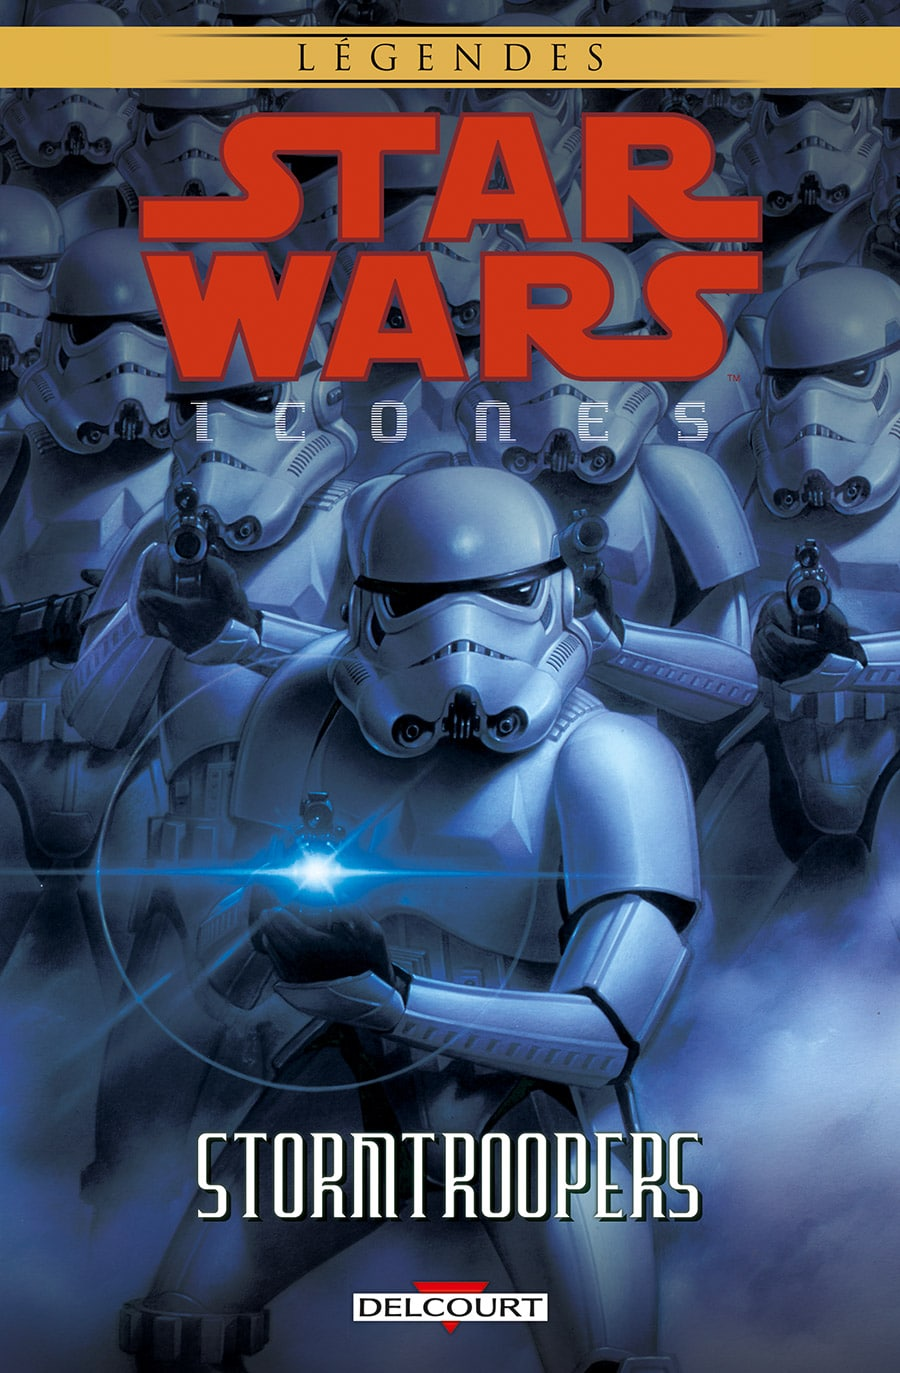 Star Wars Icones Tome 6 - Stormtroopers